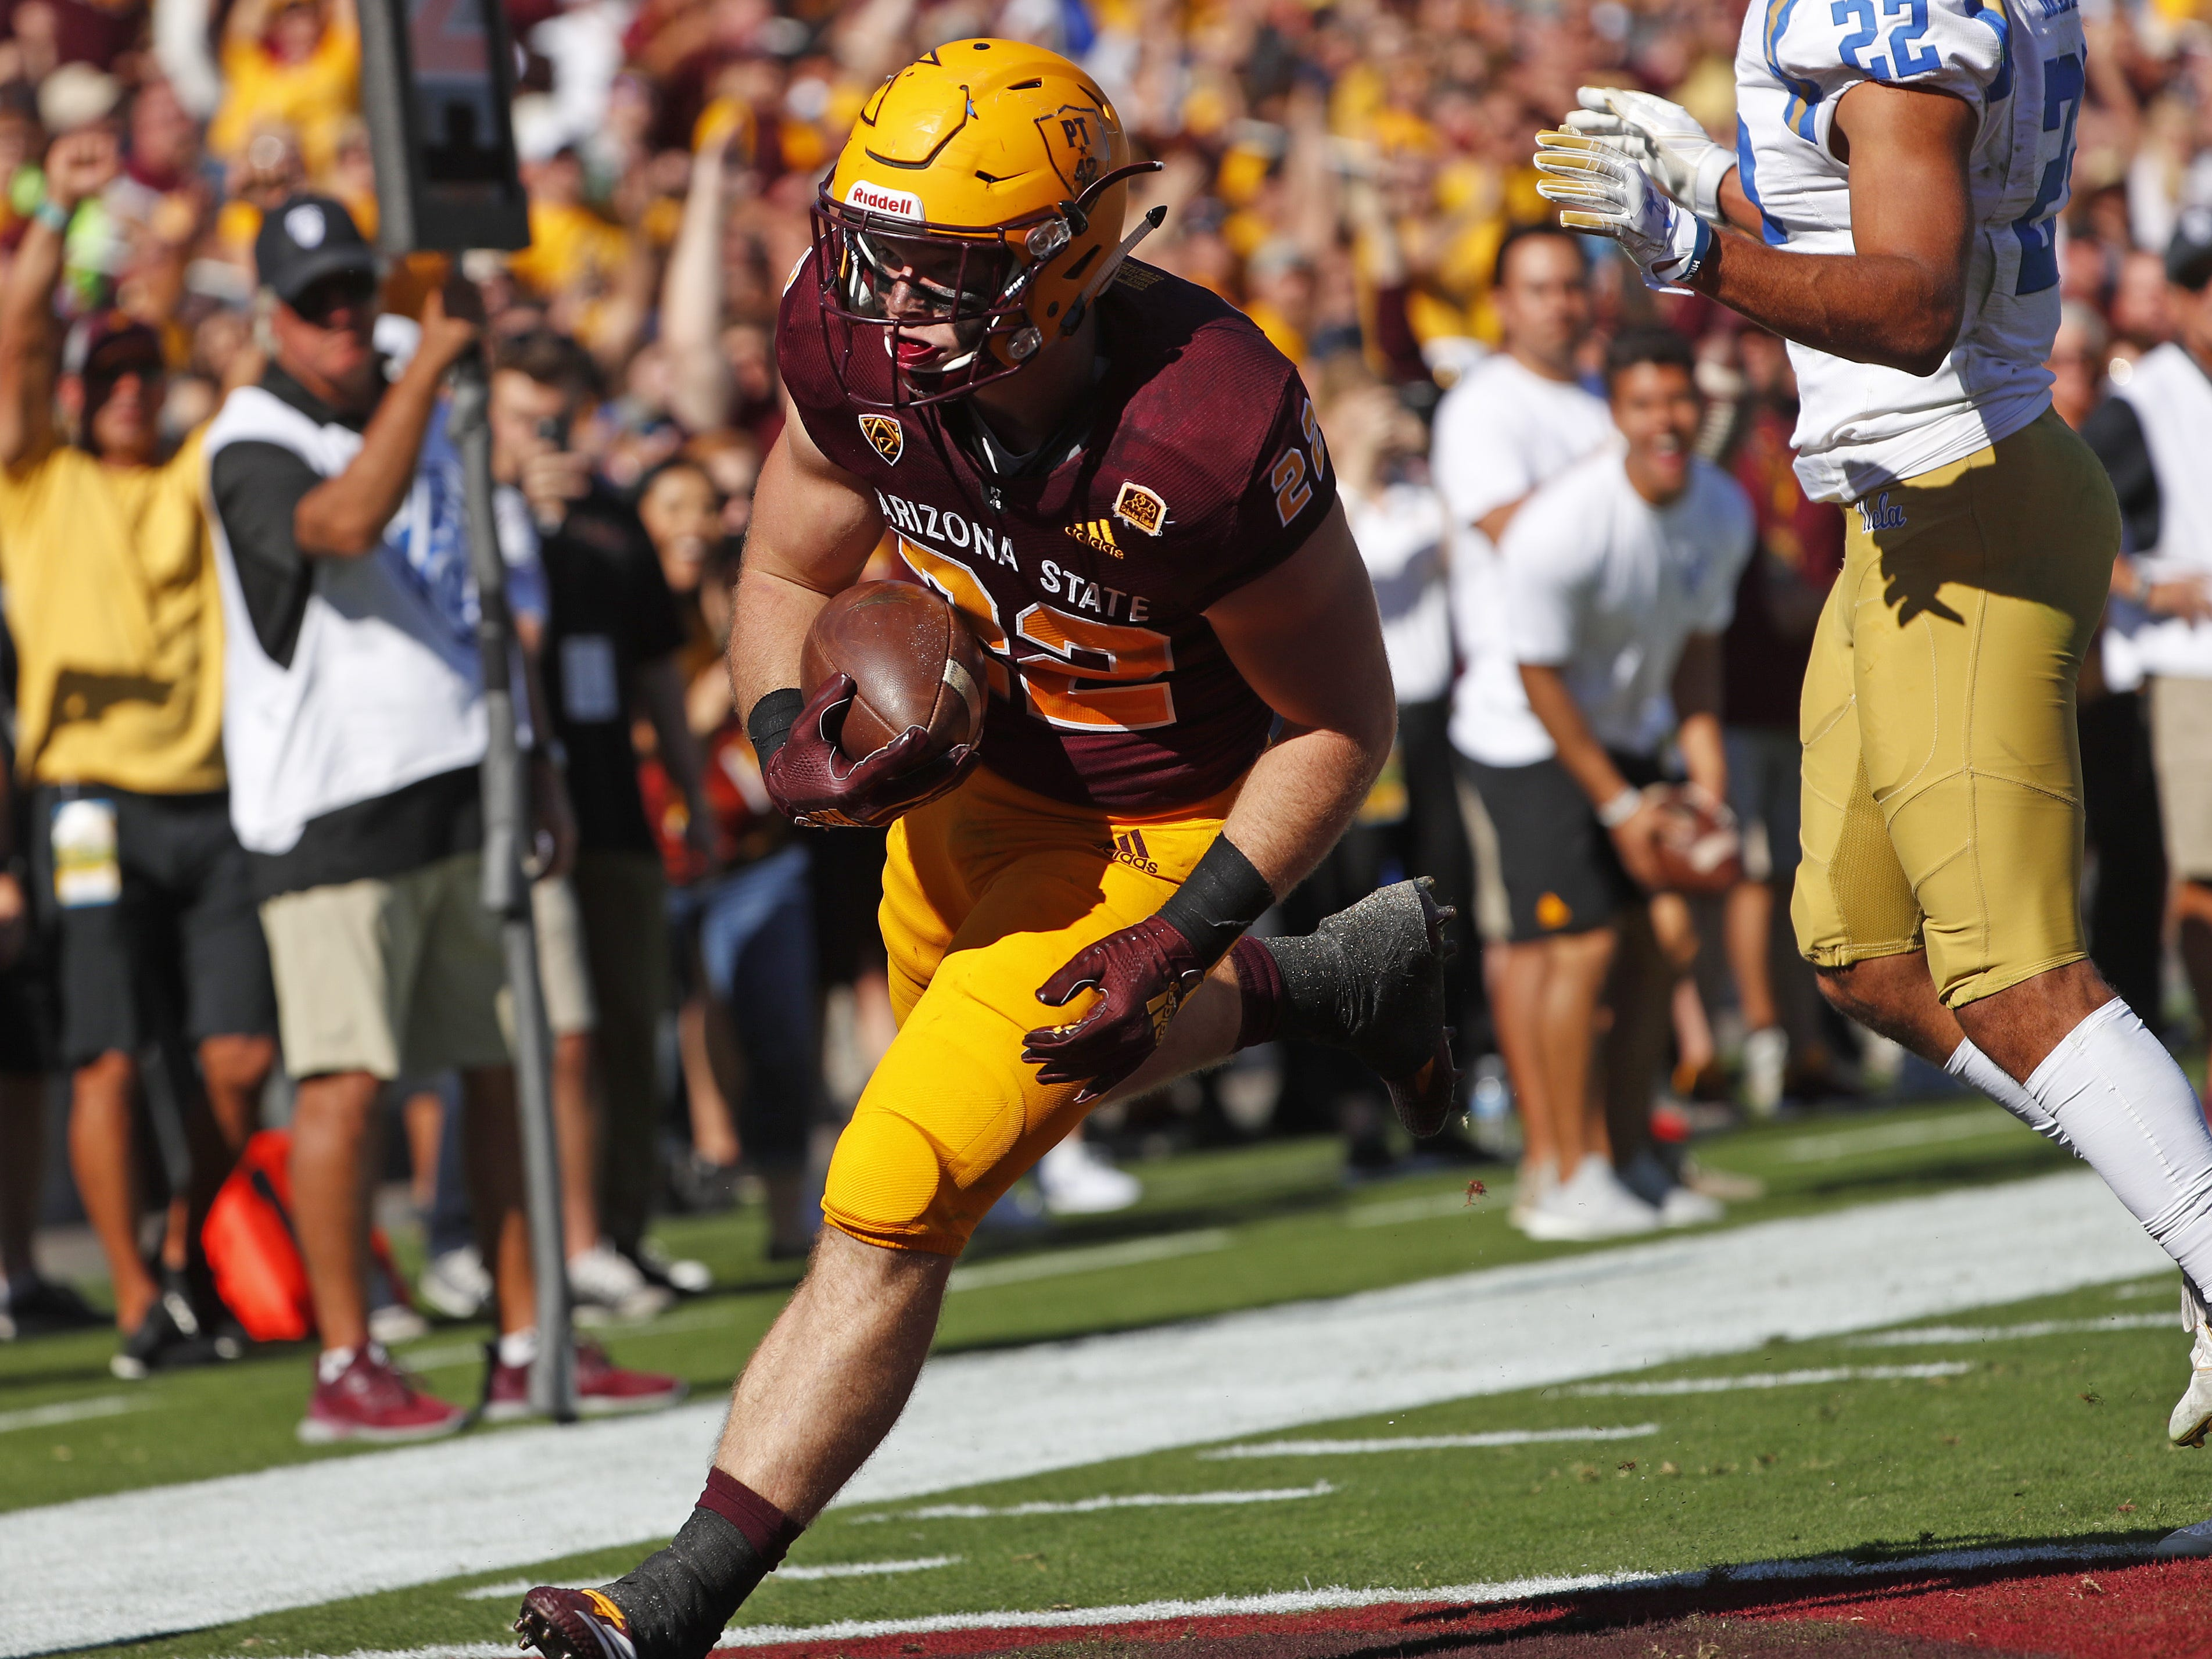 ASU's Nick Ralston (22) scores a touchdown against UCLA during the first half at Sun Devil Stadium in Tempe, Ariz. on November 10, 2018.